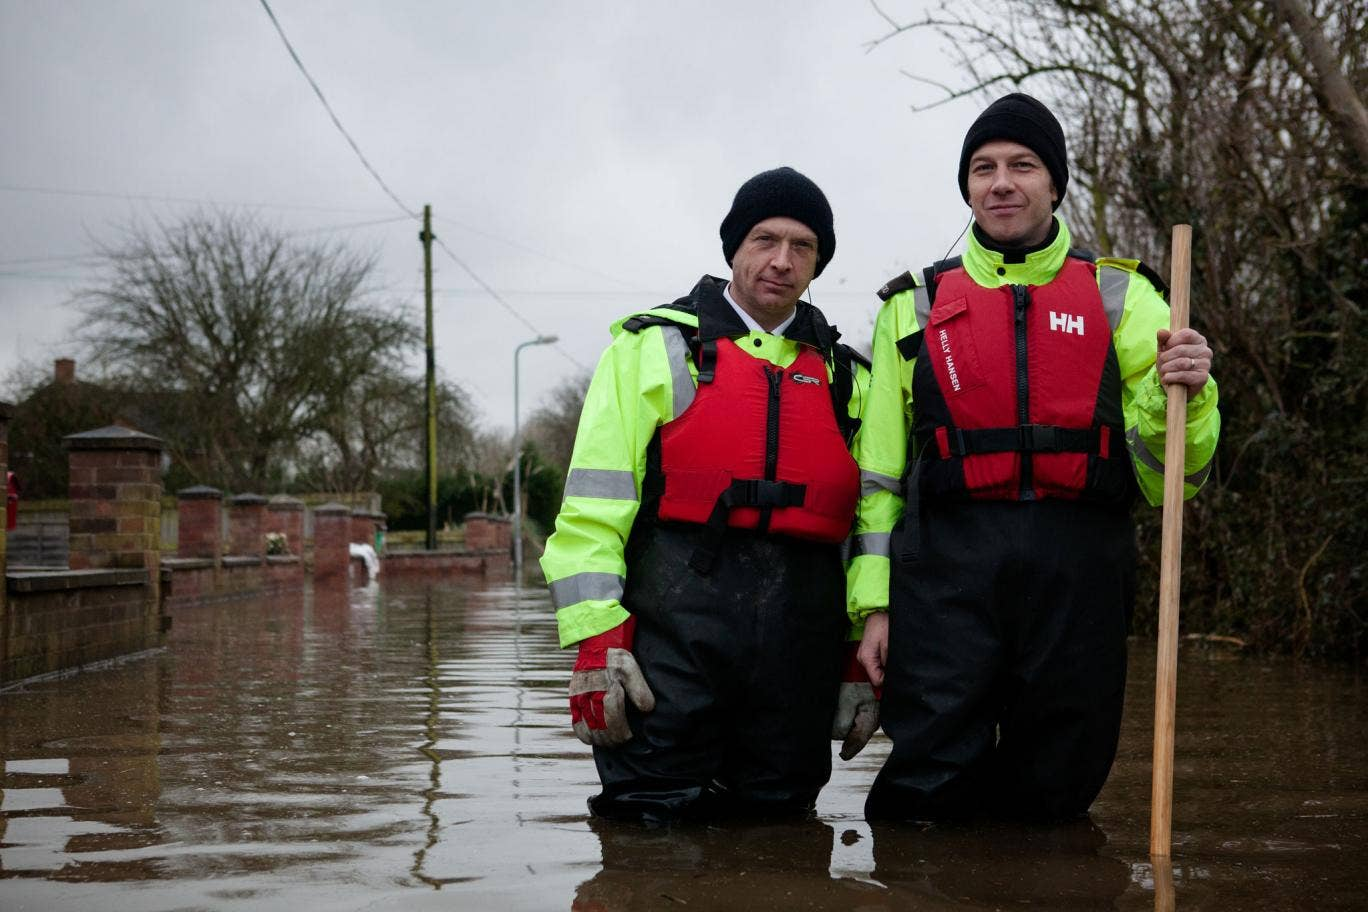 Members of the Avon and Somerset Police visit people still living in their flooded homes